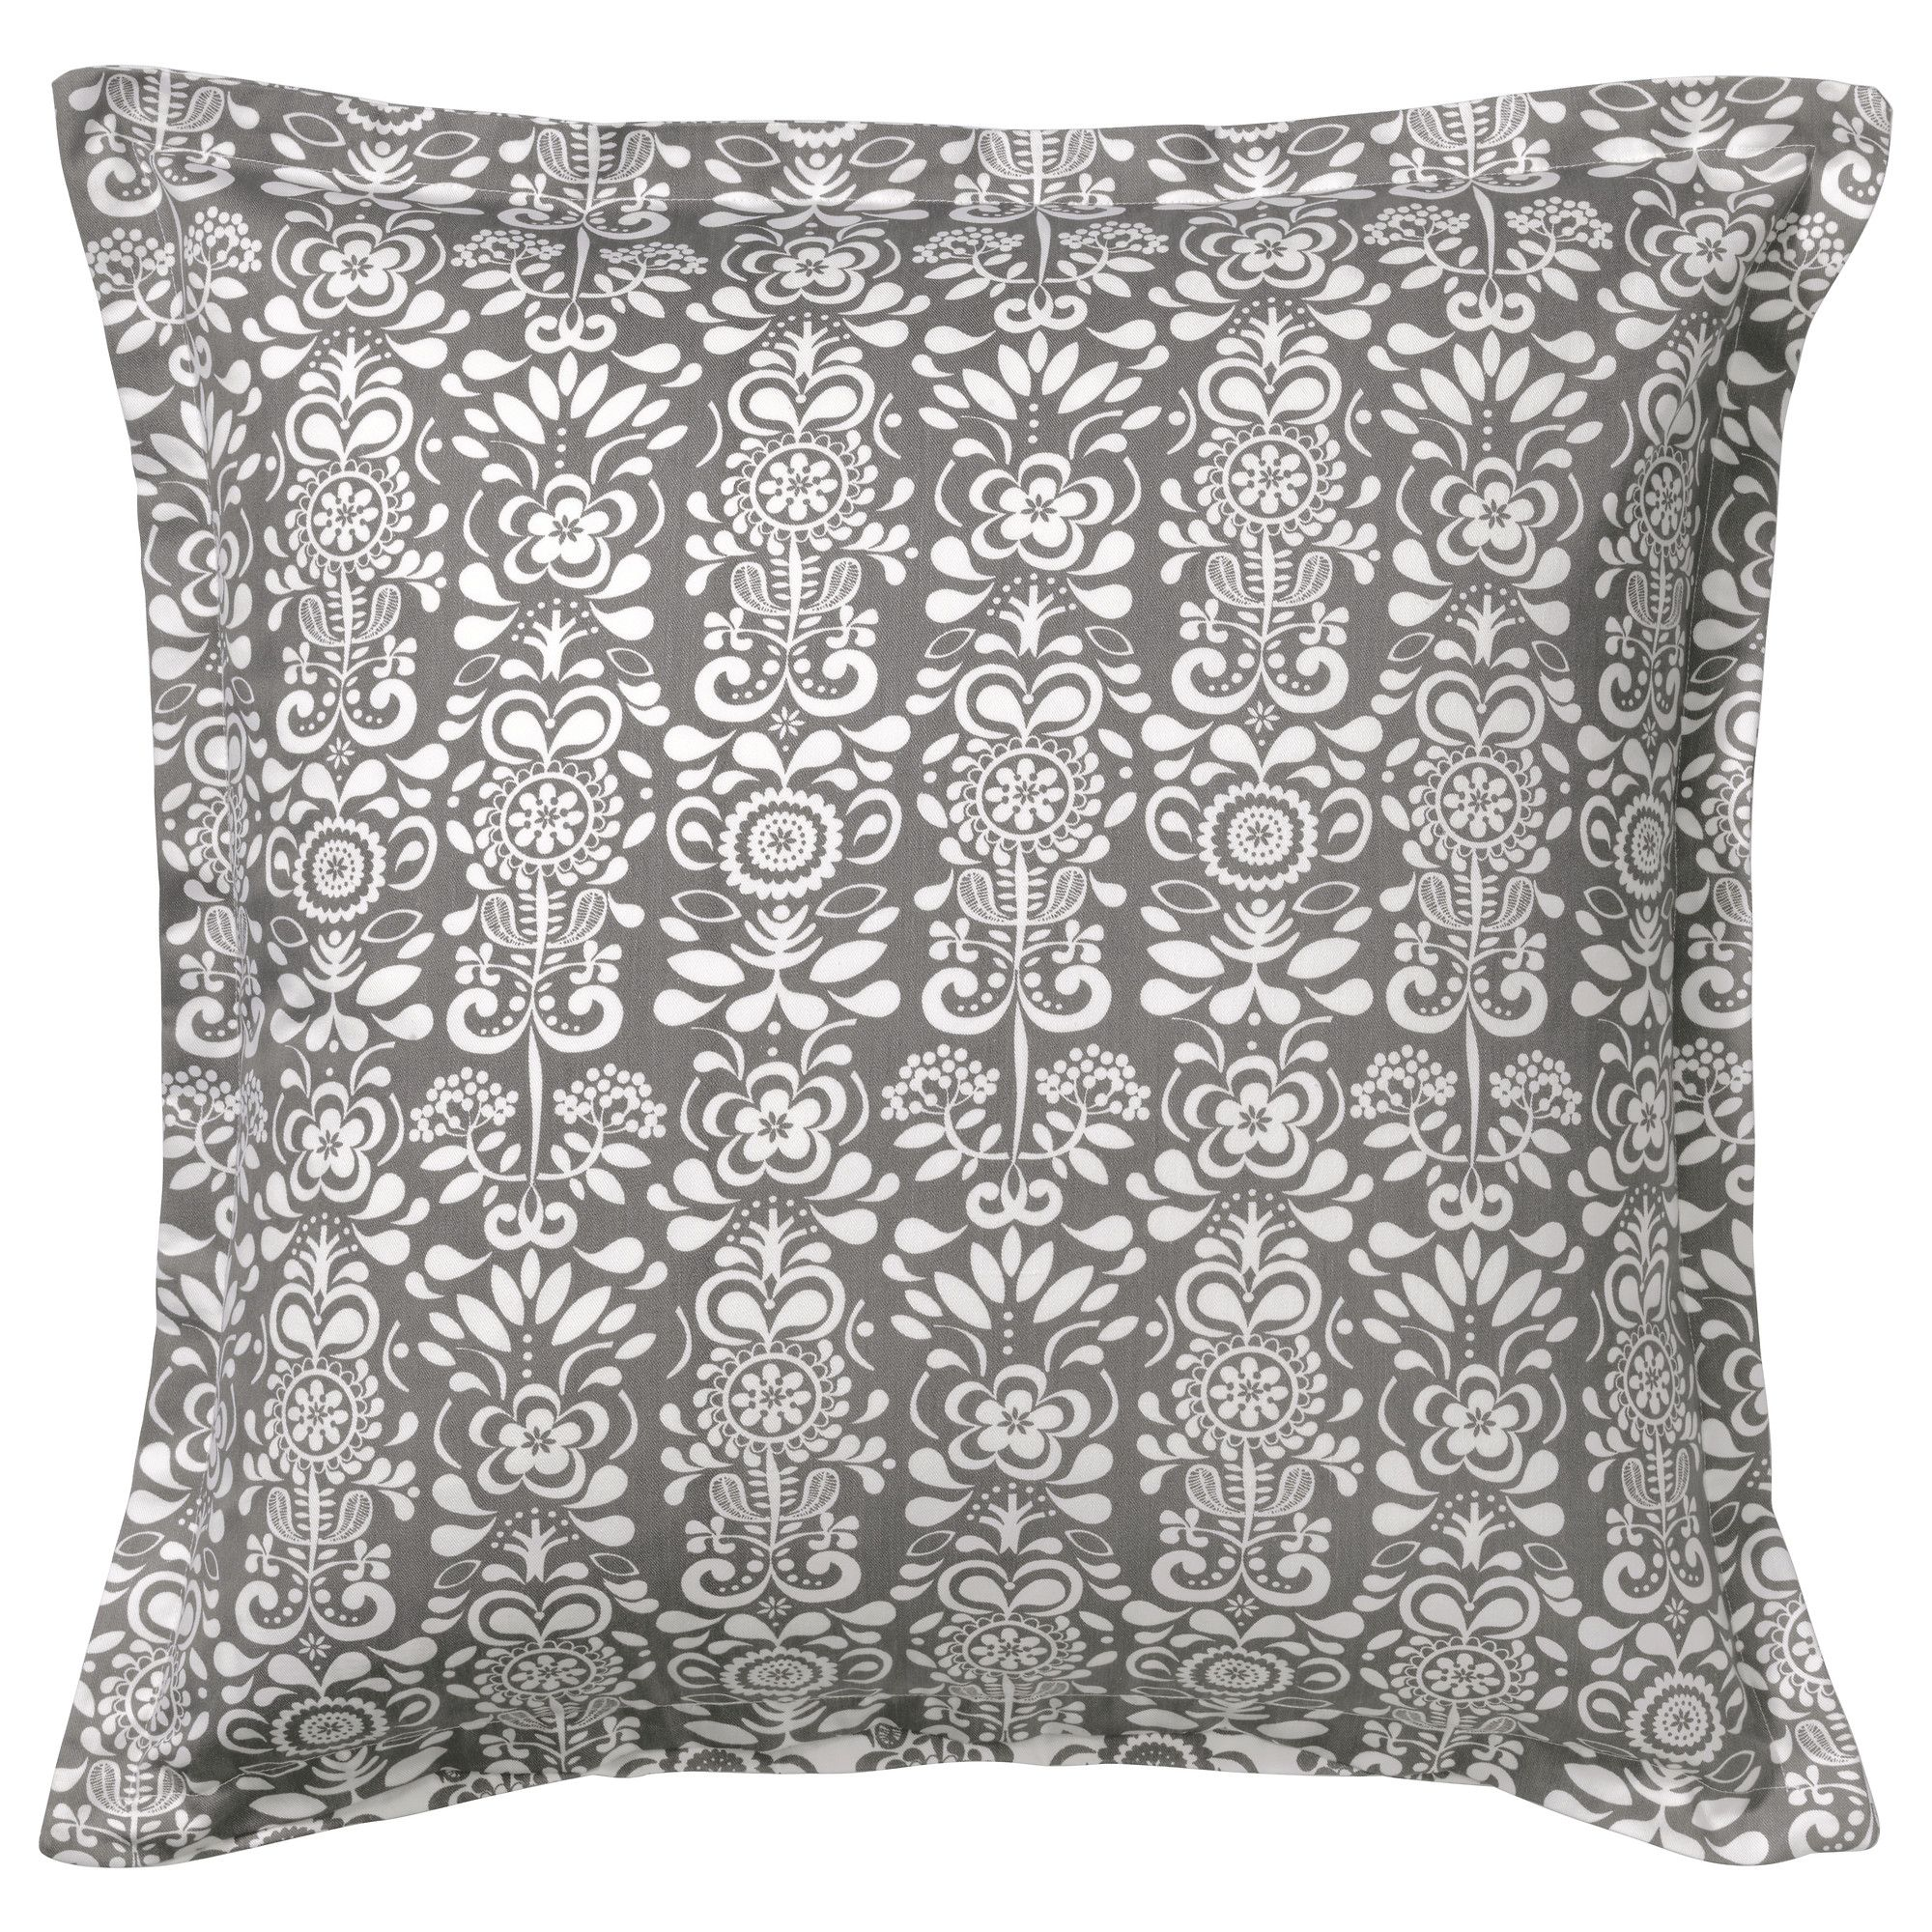 US Furniture and Home Furnishings Ikea, Cushion covers